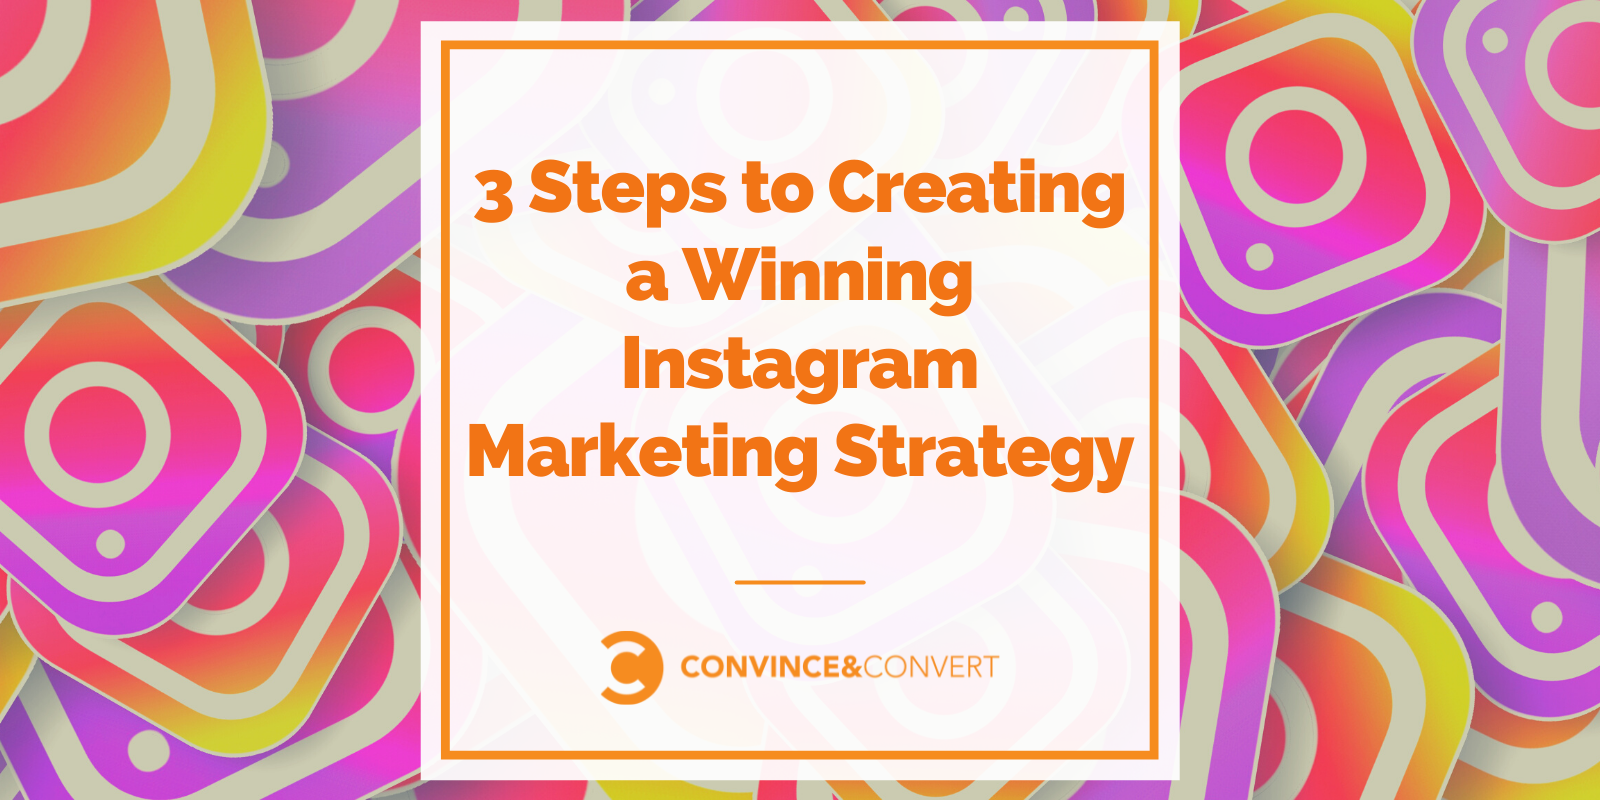 3 Steps to Creating a Winning Instagram Marketing Strategy